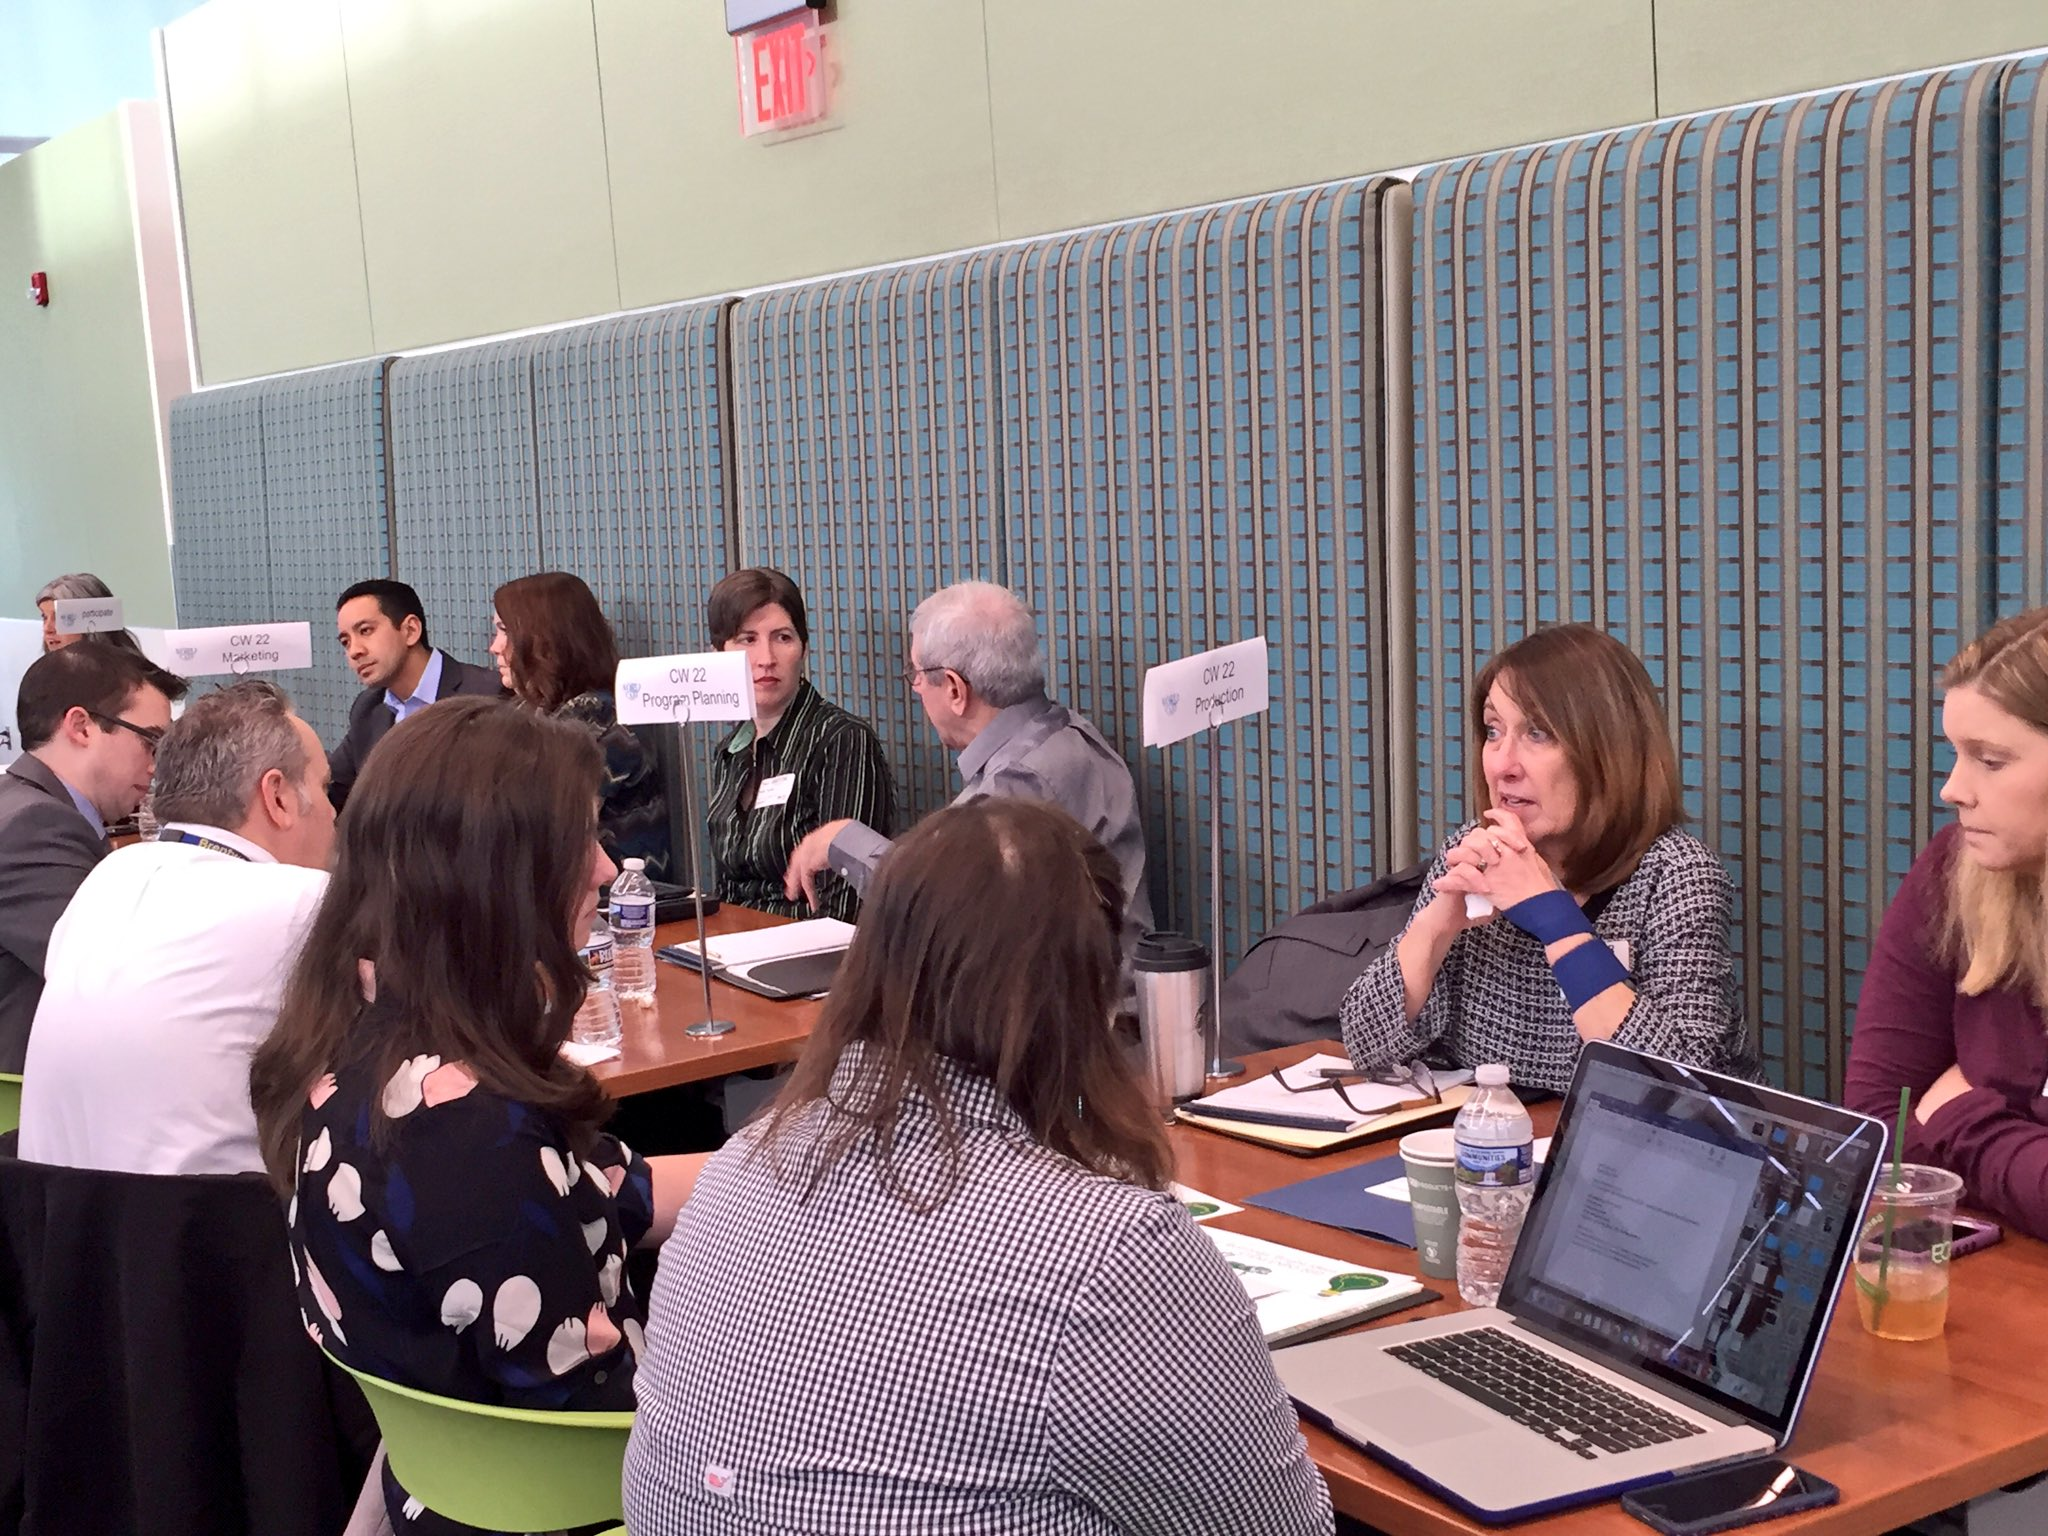 .@thecw22 was one of four businesses that sent multiple teams to collaborate with educators today! #WakeEdWorldCafe https://t.co/qgSIGxmk1Z